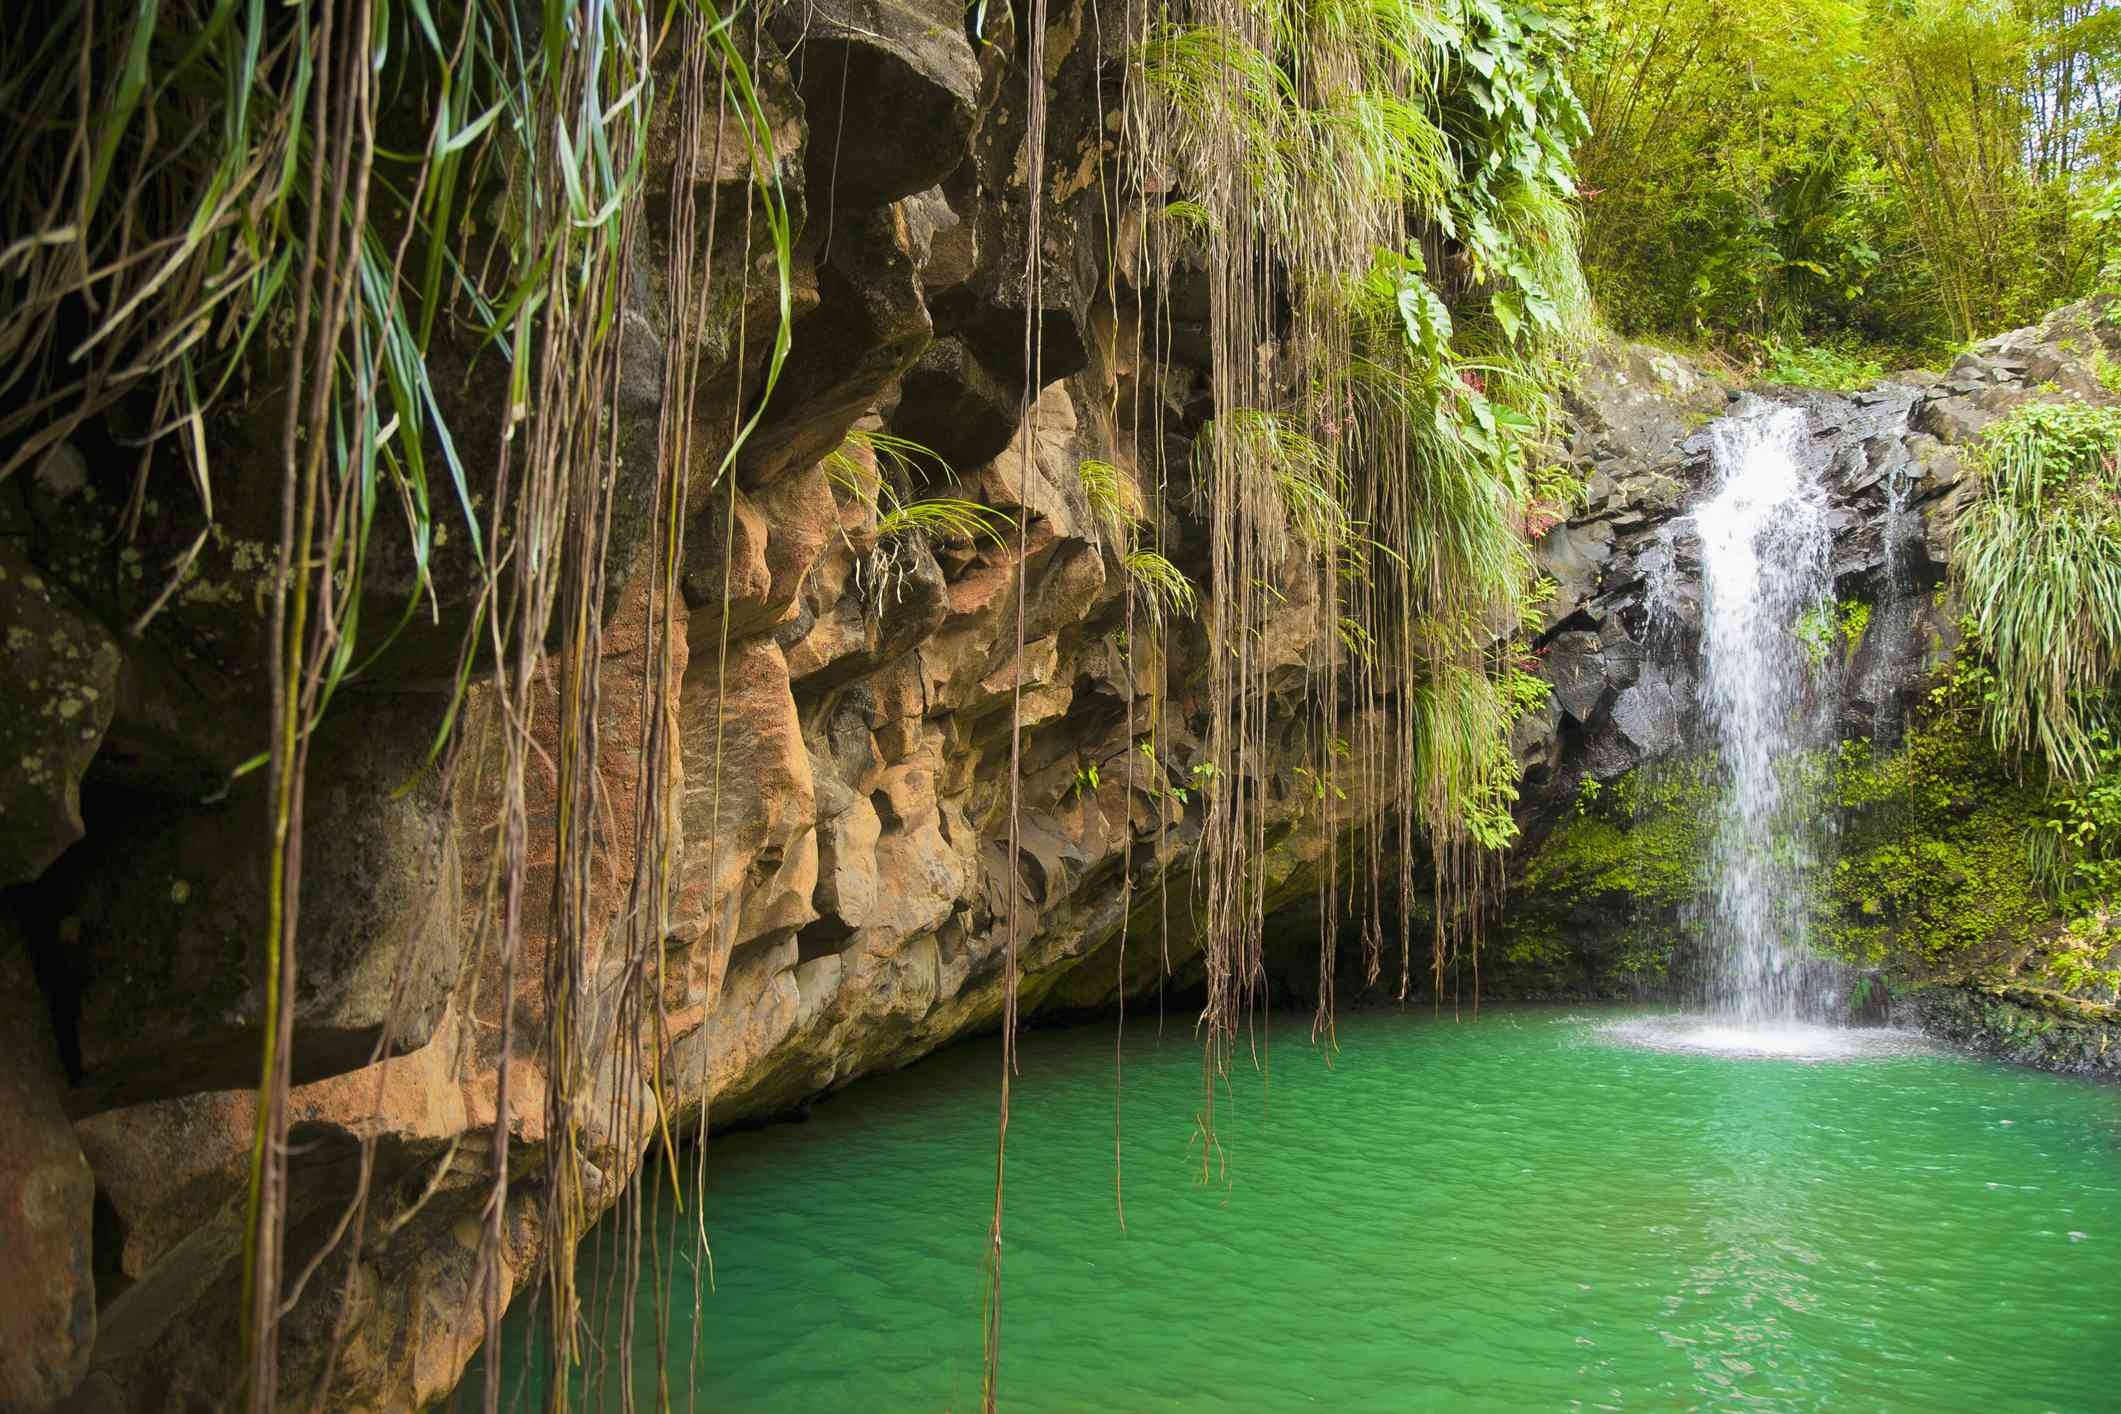 Small waterfall going into a pool with a rocky cliffside in Grenada